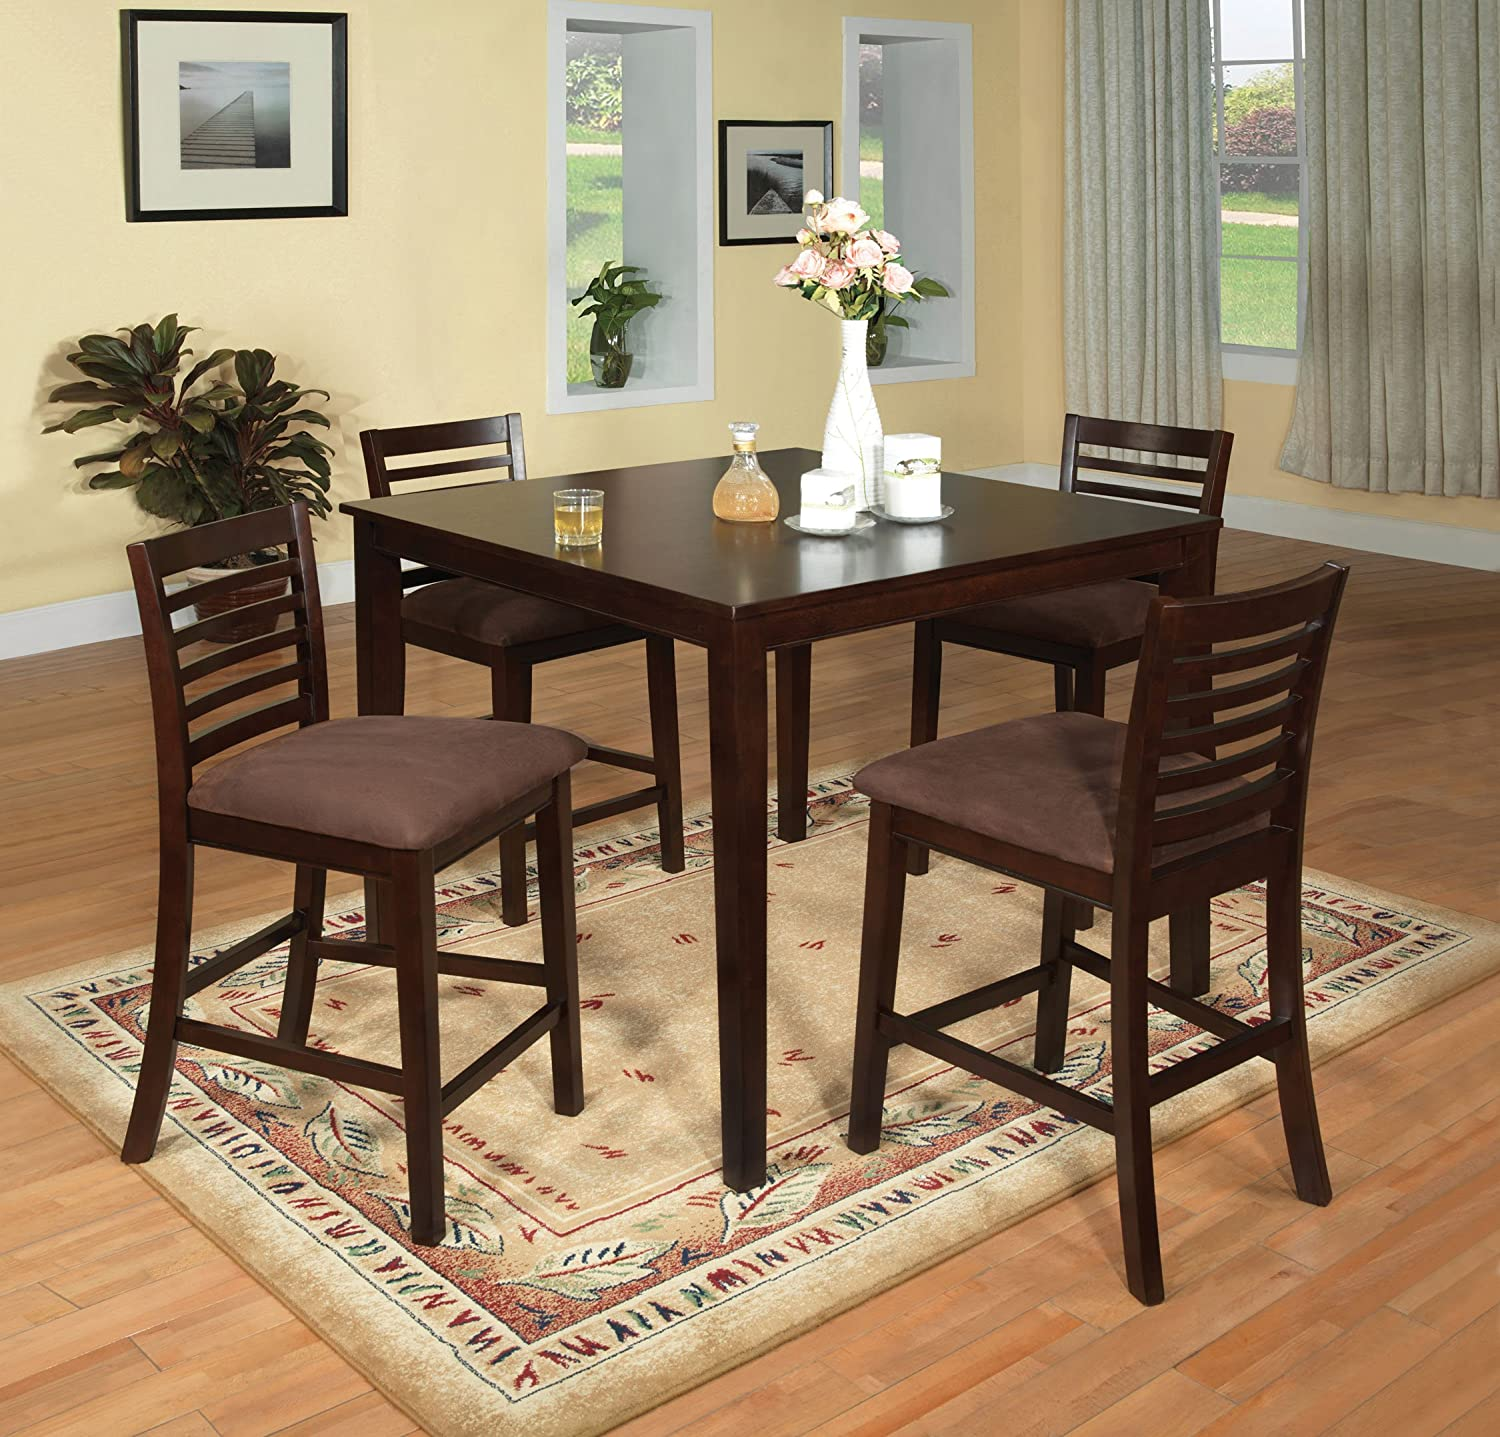 Amazon.com - Furniture of America Ramone 5-Piece Counter Height ...